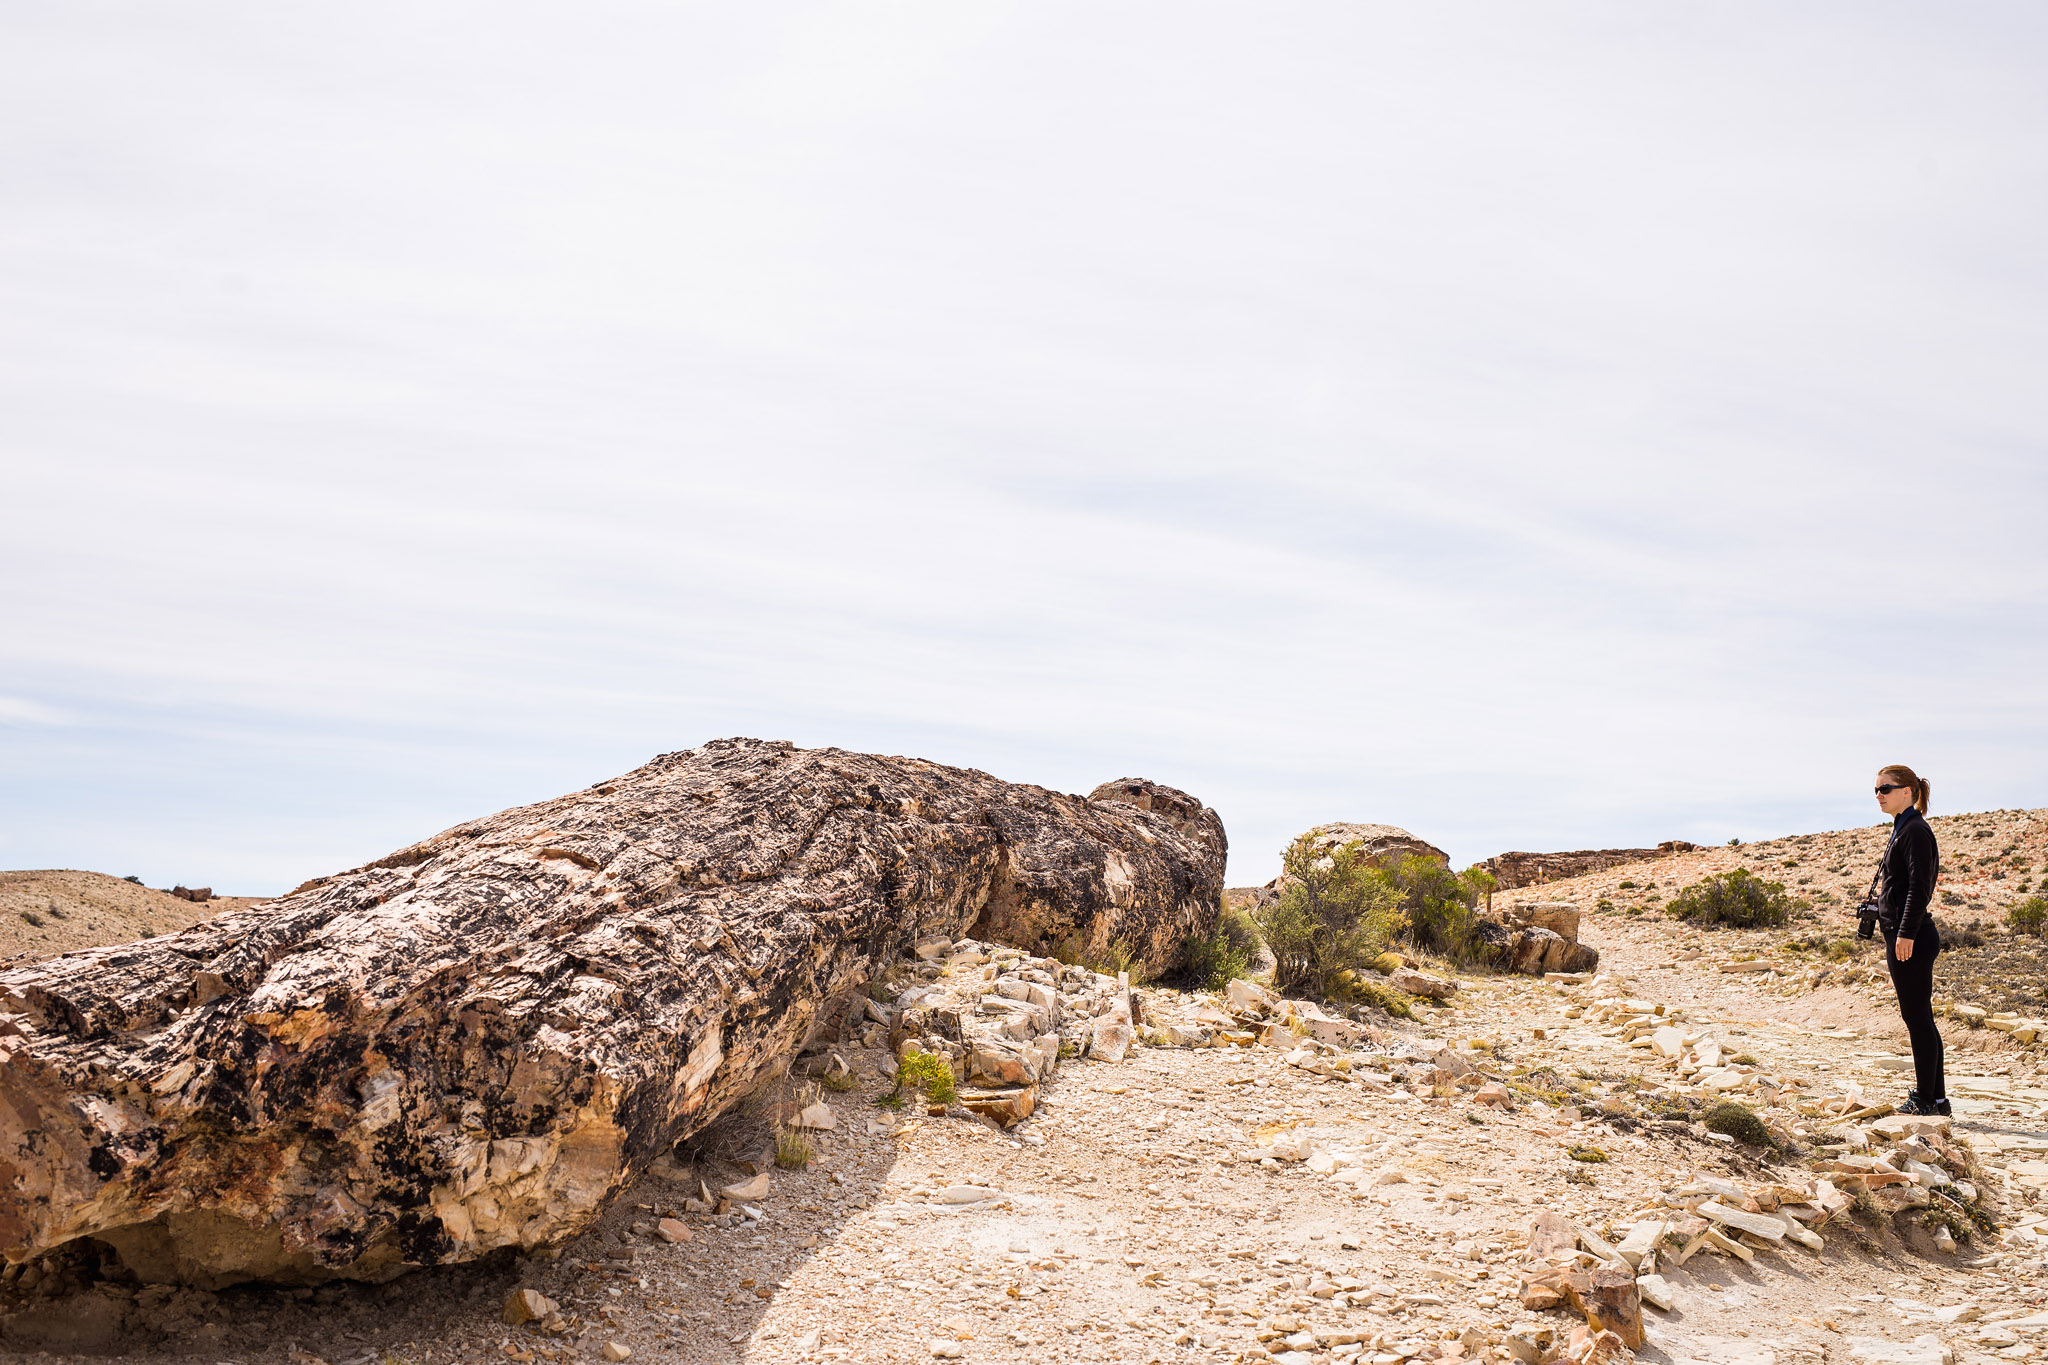 wedding-travellers-argentina-coast-petrified-forest-jaramillo-bosques-petrificados-fossil-tree-huge-enormous